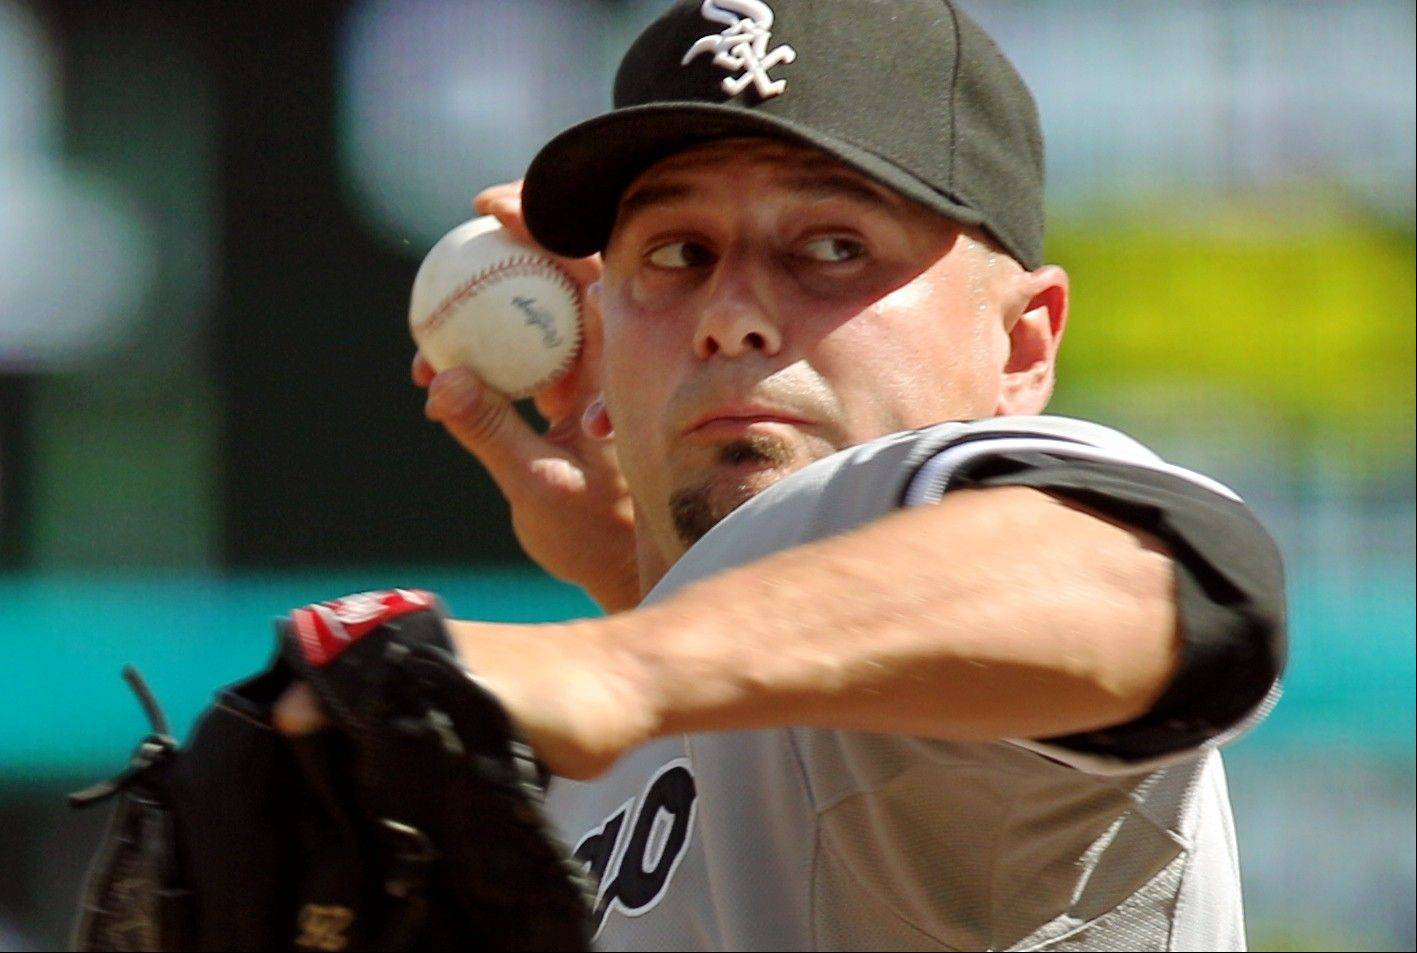 White Sox relief pitcher Jesse Crain pitched 12⁄3 perfect innings Monday and has 27 straight scoreless appearances. He has the most trade value on the roster.